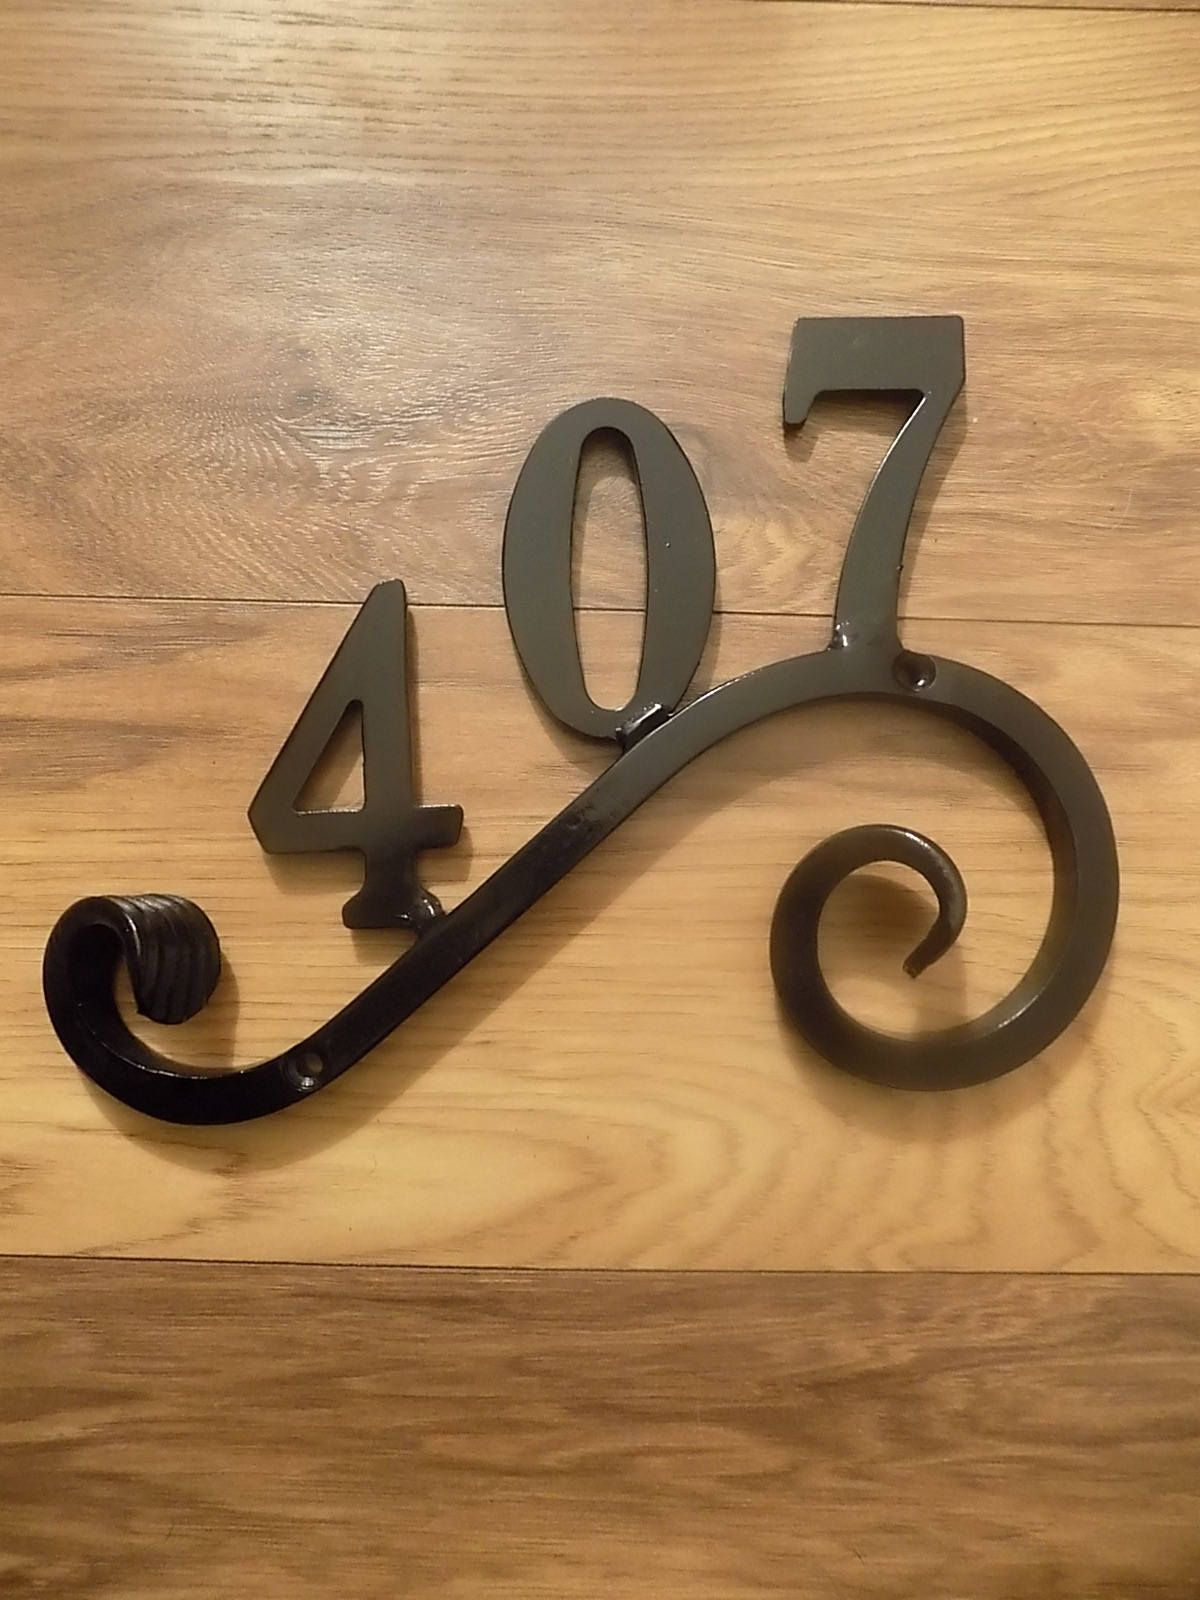 Wrought Iron Forged Steel 3 Number House Plaque